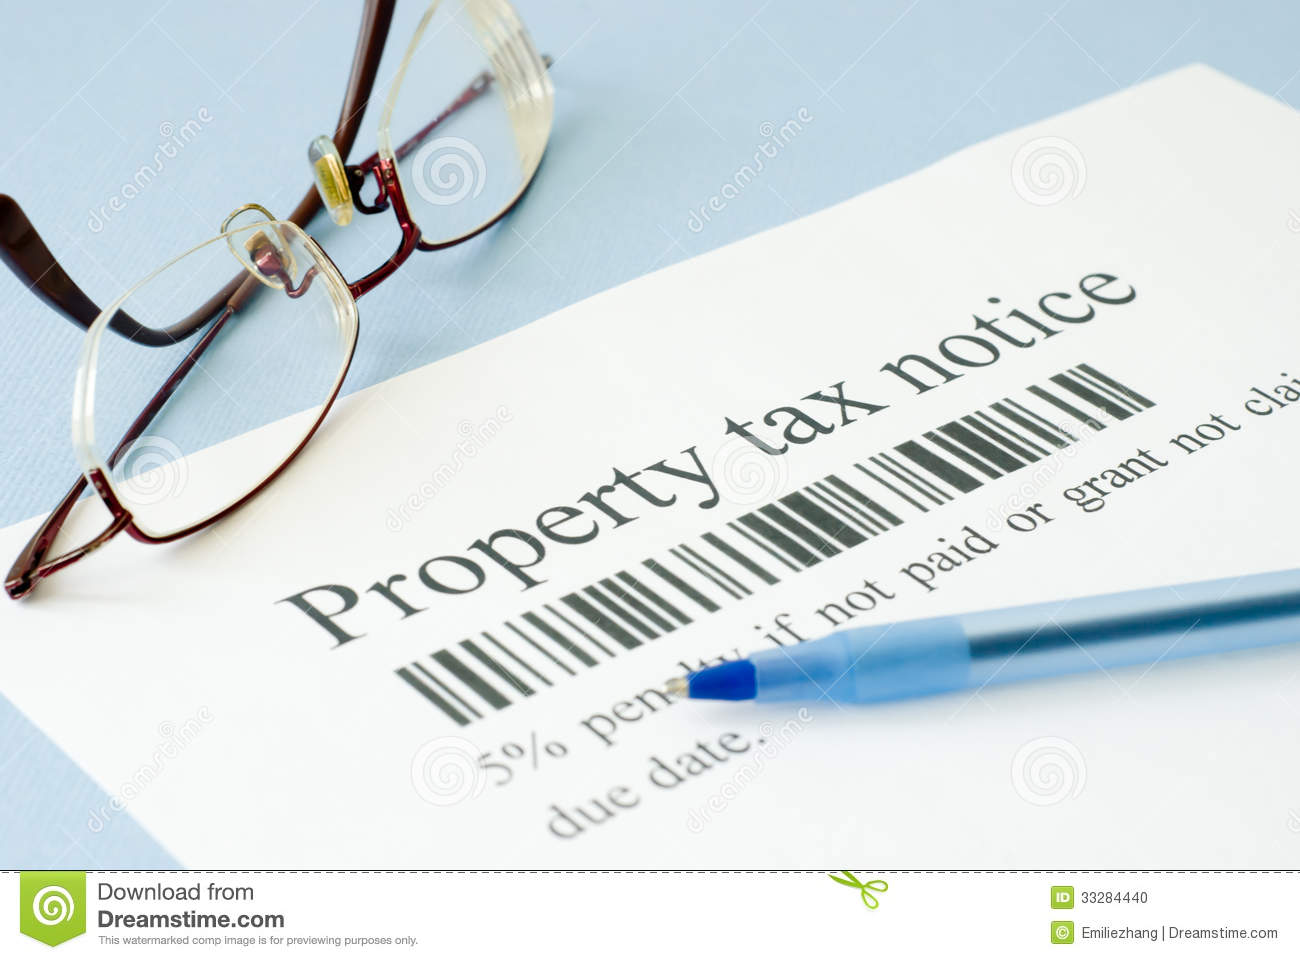 how to get tax assessment notice online